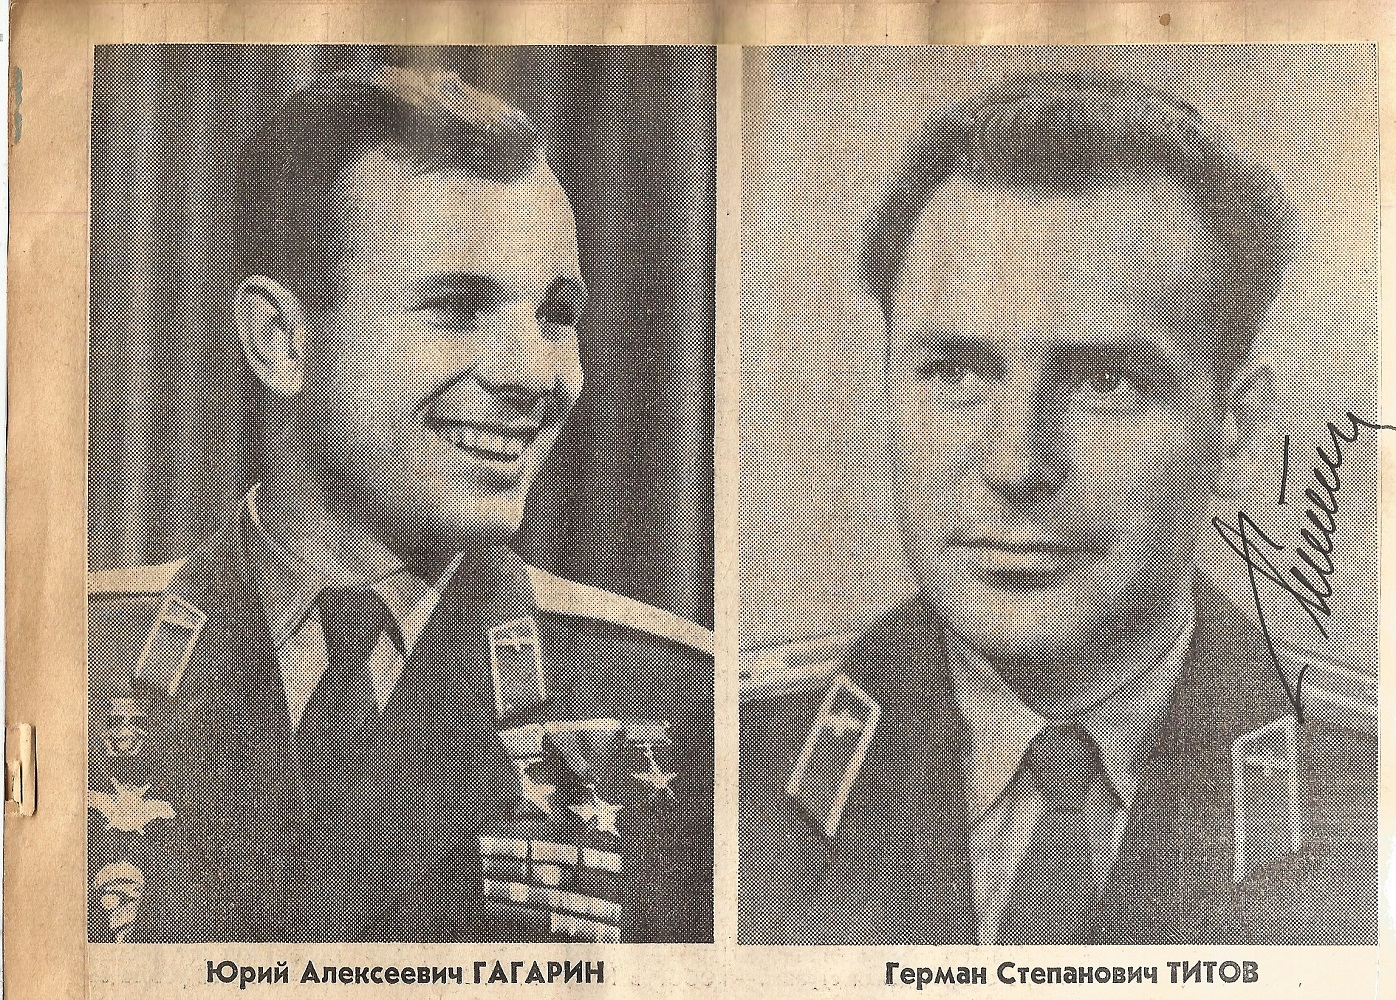 1950/60s Russian Cosmonauts multiple signed hard backed scrapbook compiled by a worker at Baikonur - Image 9 of 22